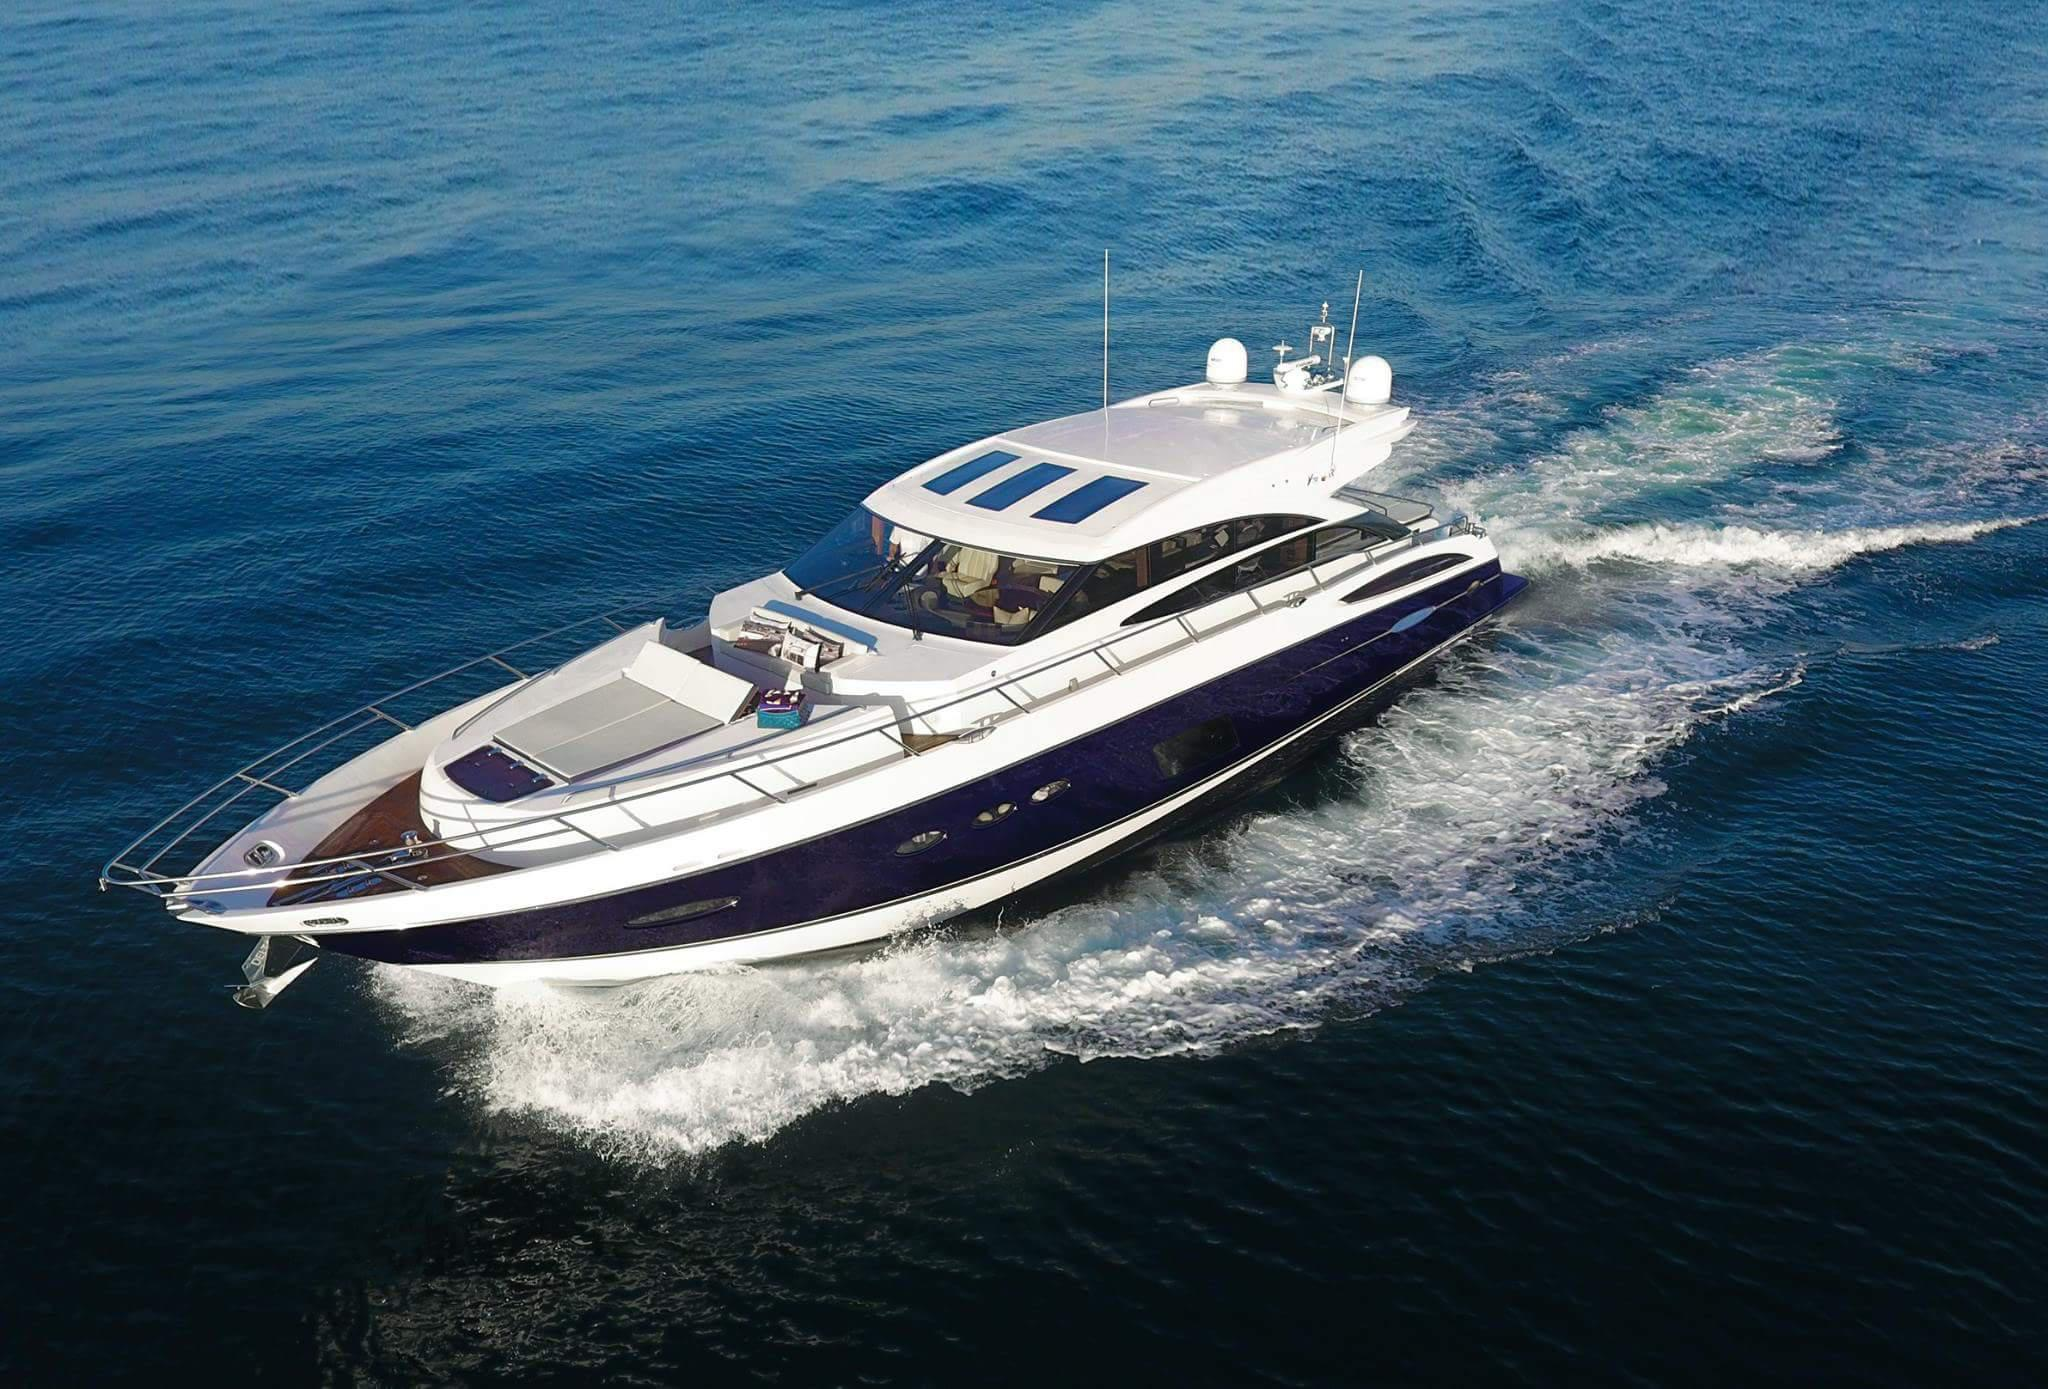 Yacht Management and Captain Services International Inc